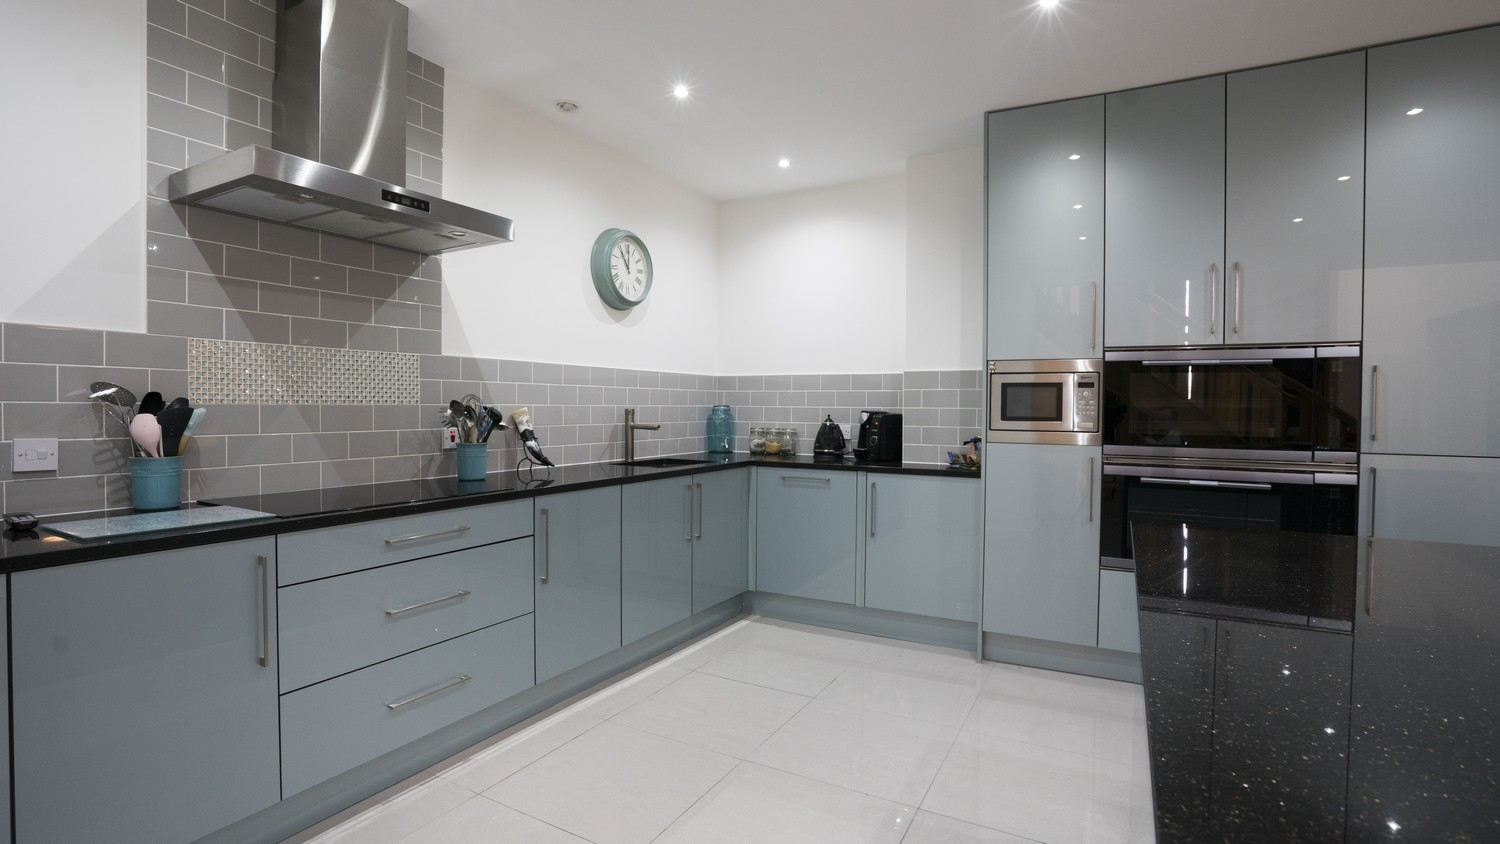 A run of lower cupboard create he perfect space for a sink and cooking hob, an ideal space for preparing meals.